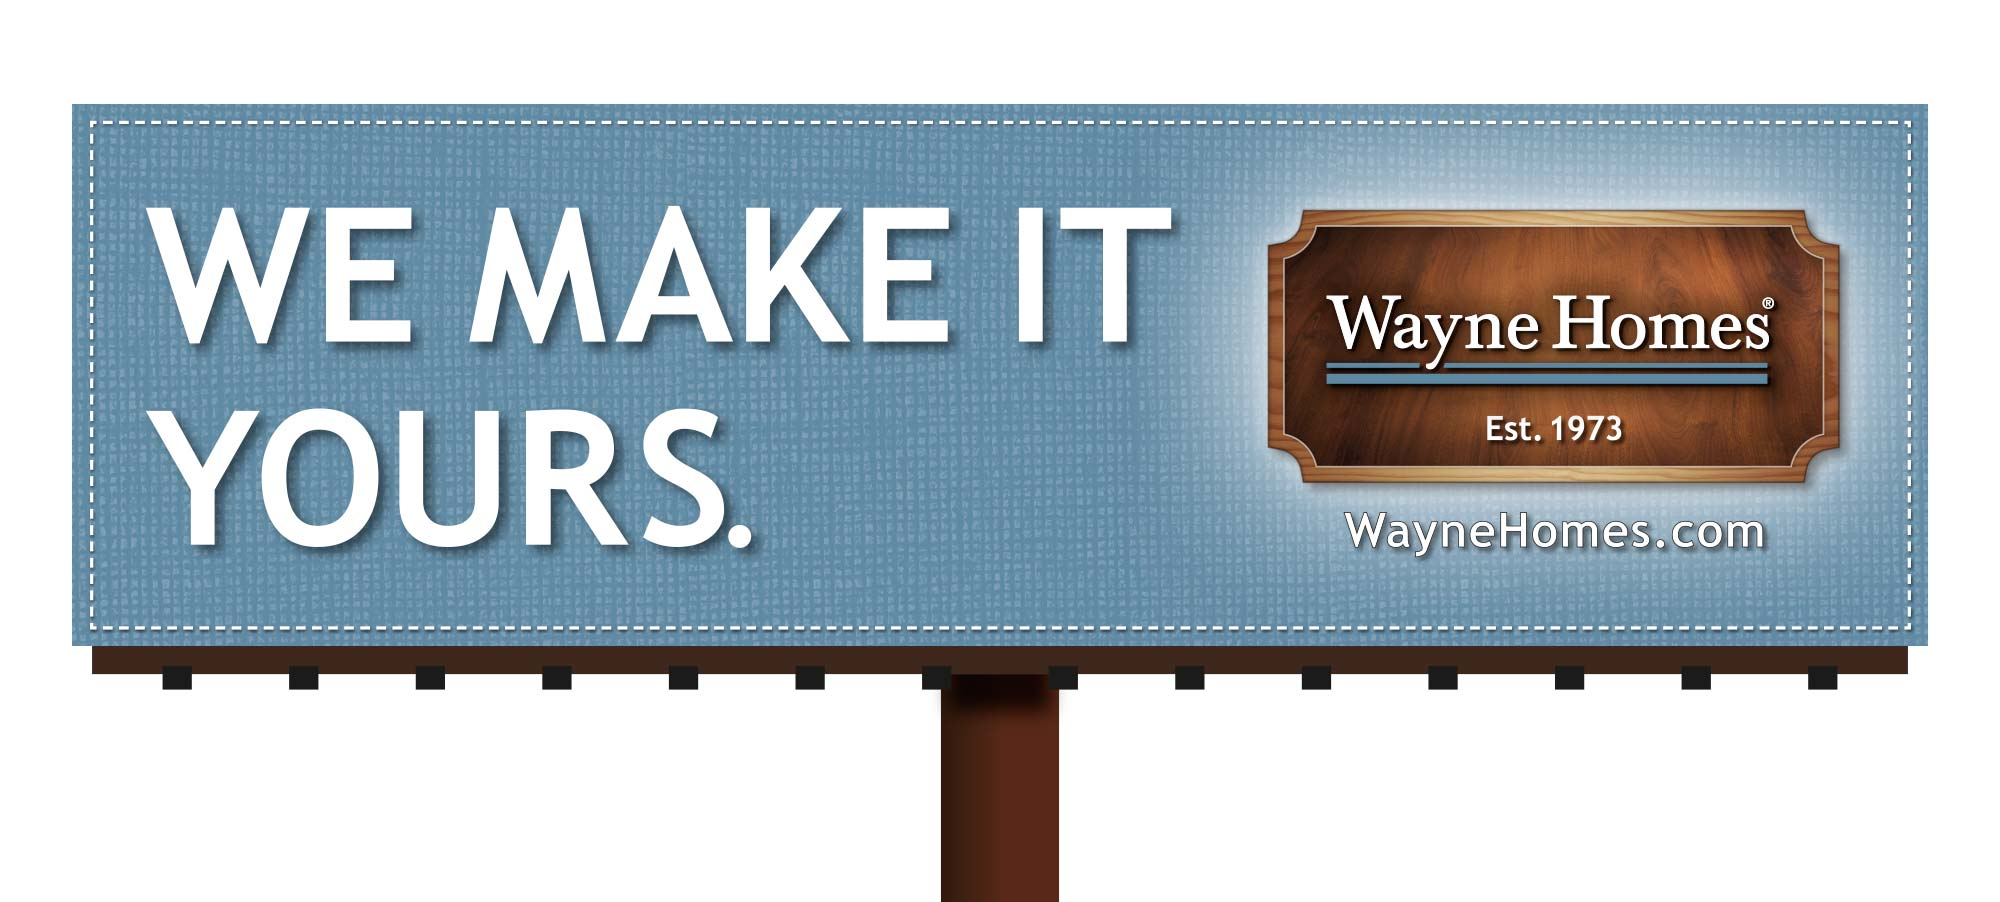 Wayne Homes